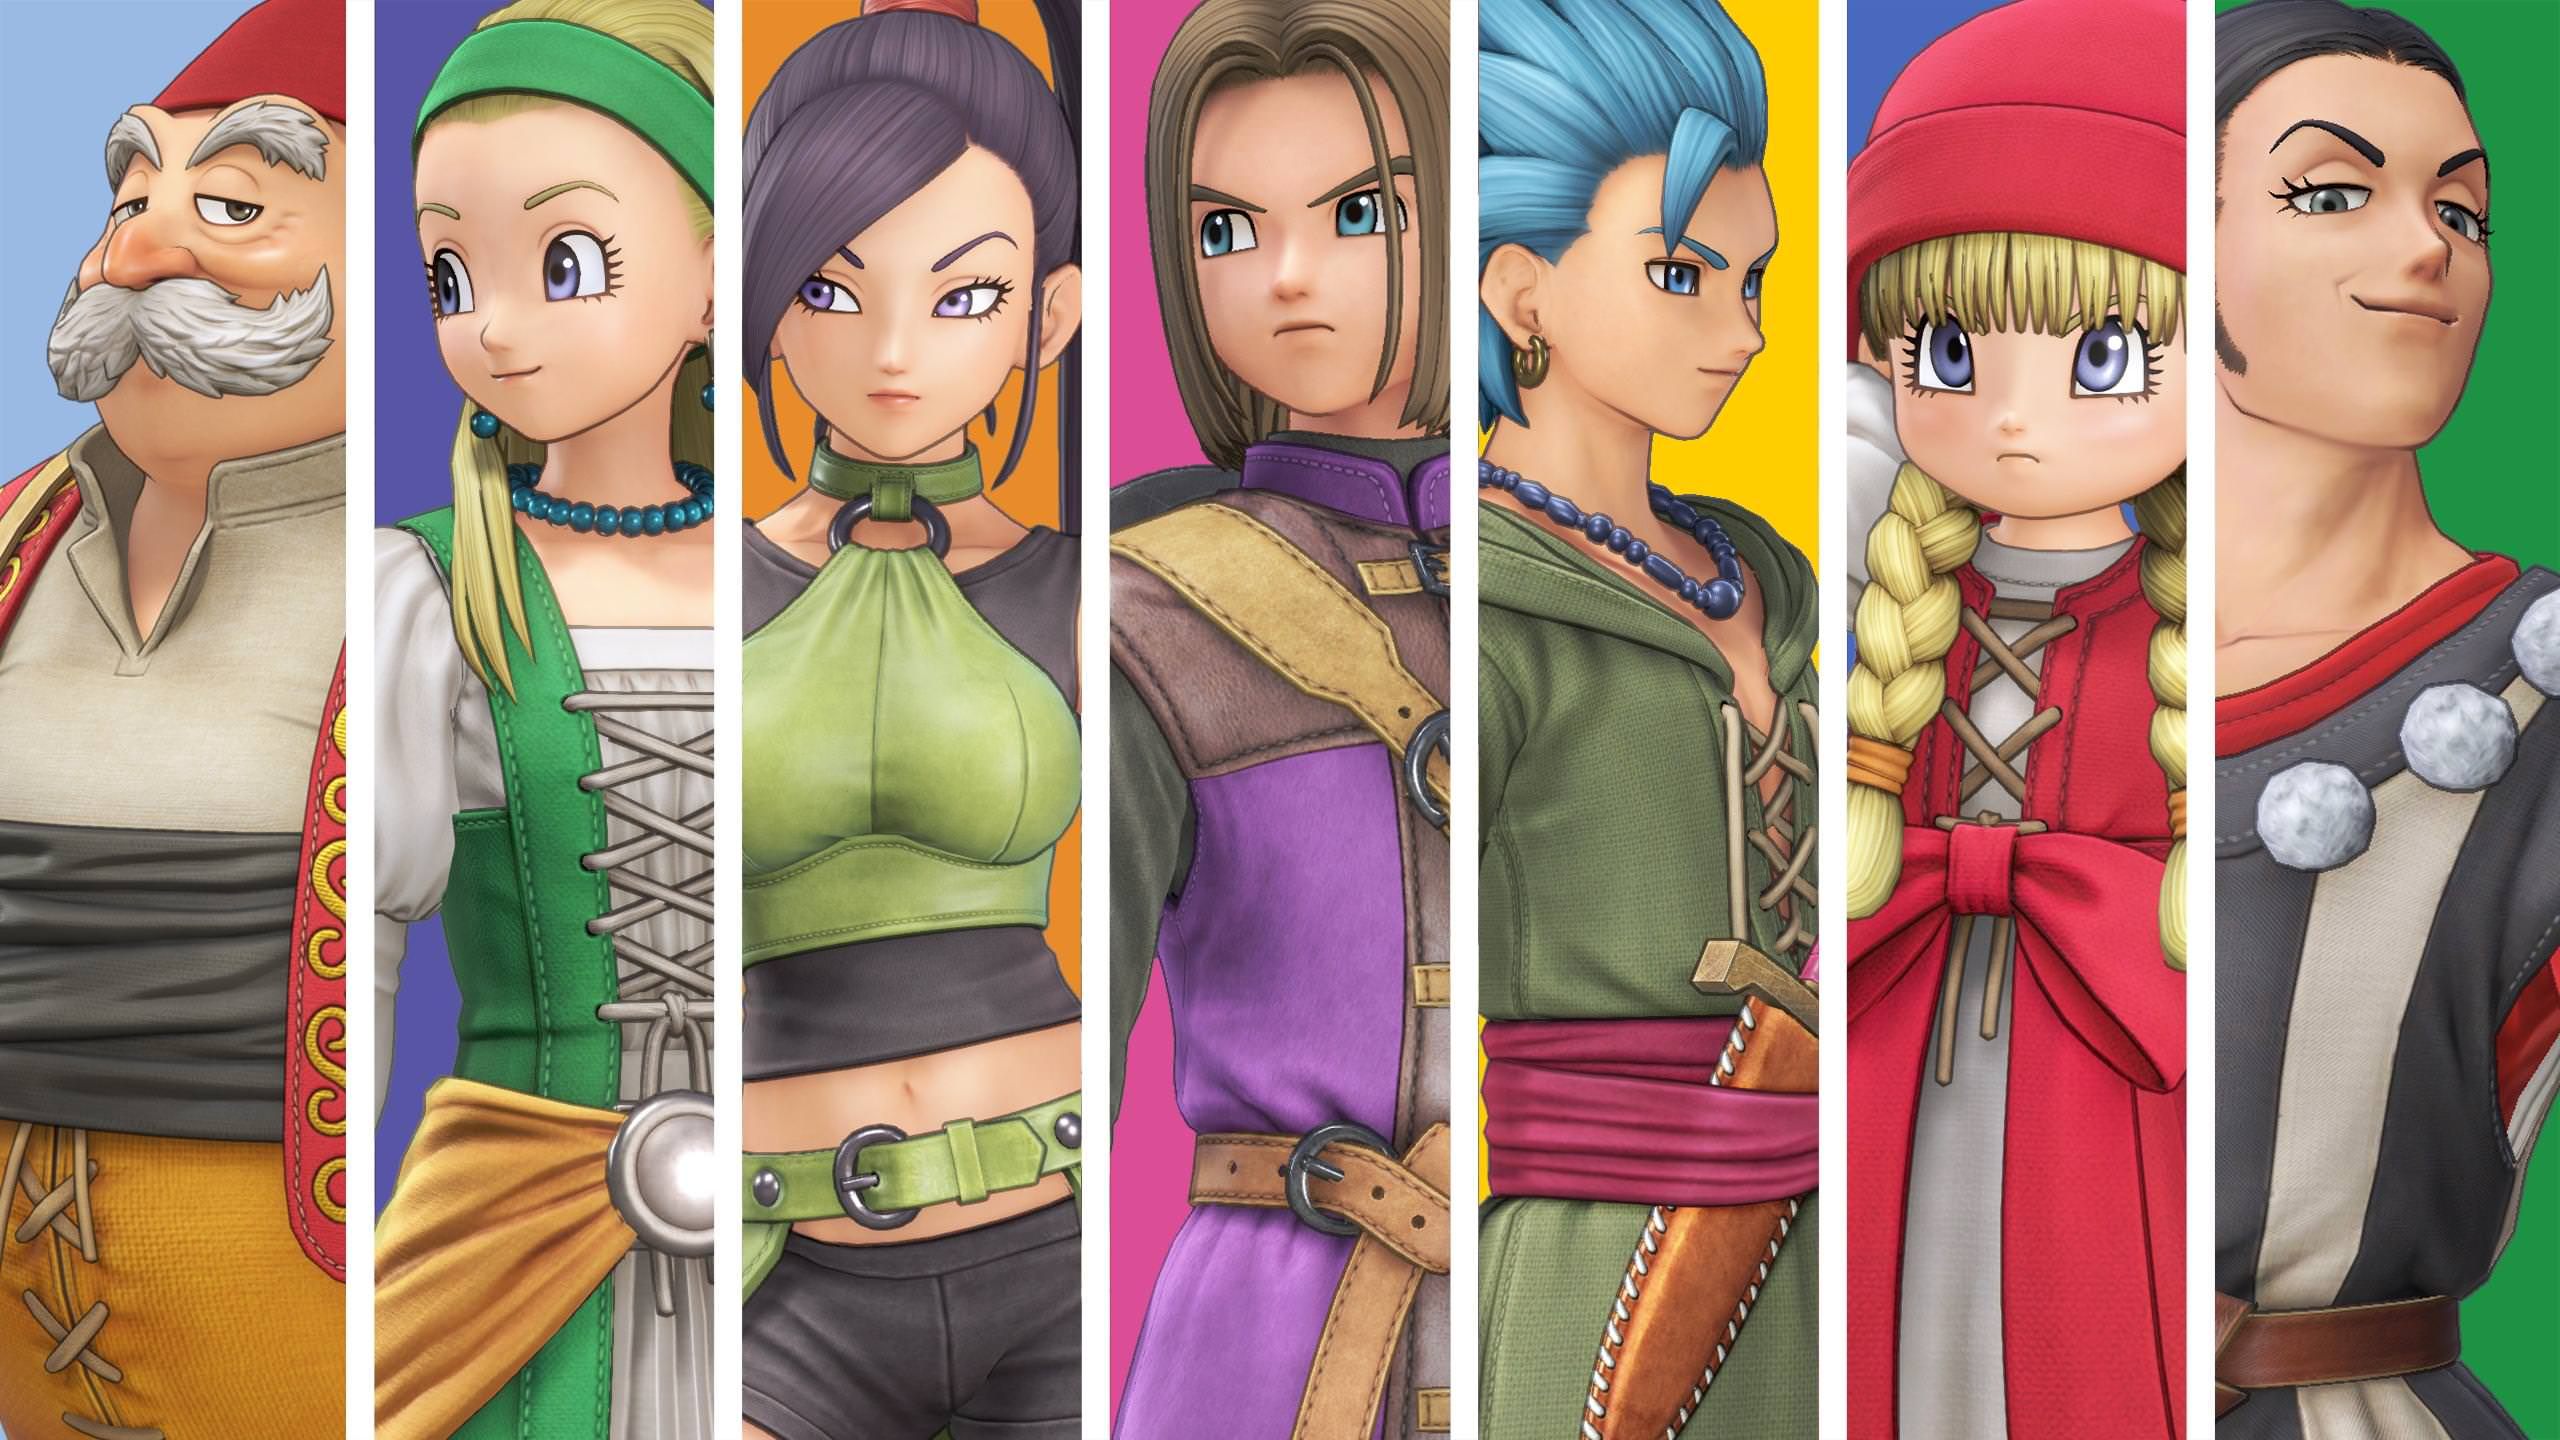 Dragon Quest Xi S Echoes Of An Elusive Age Definitive Edition Review Dashgamer Com